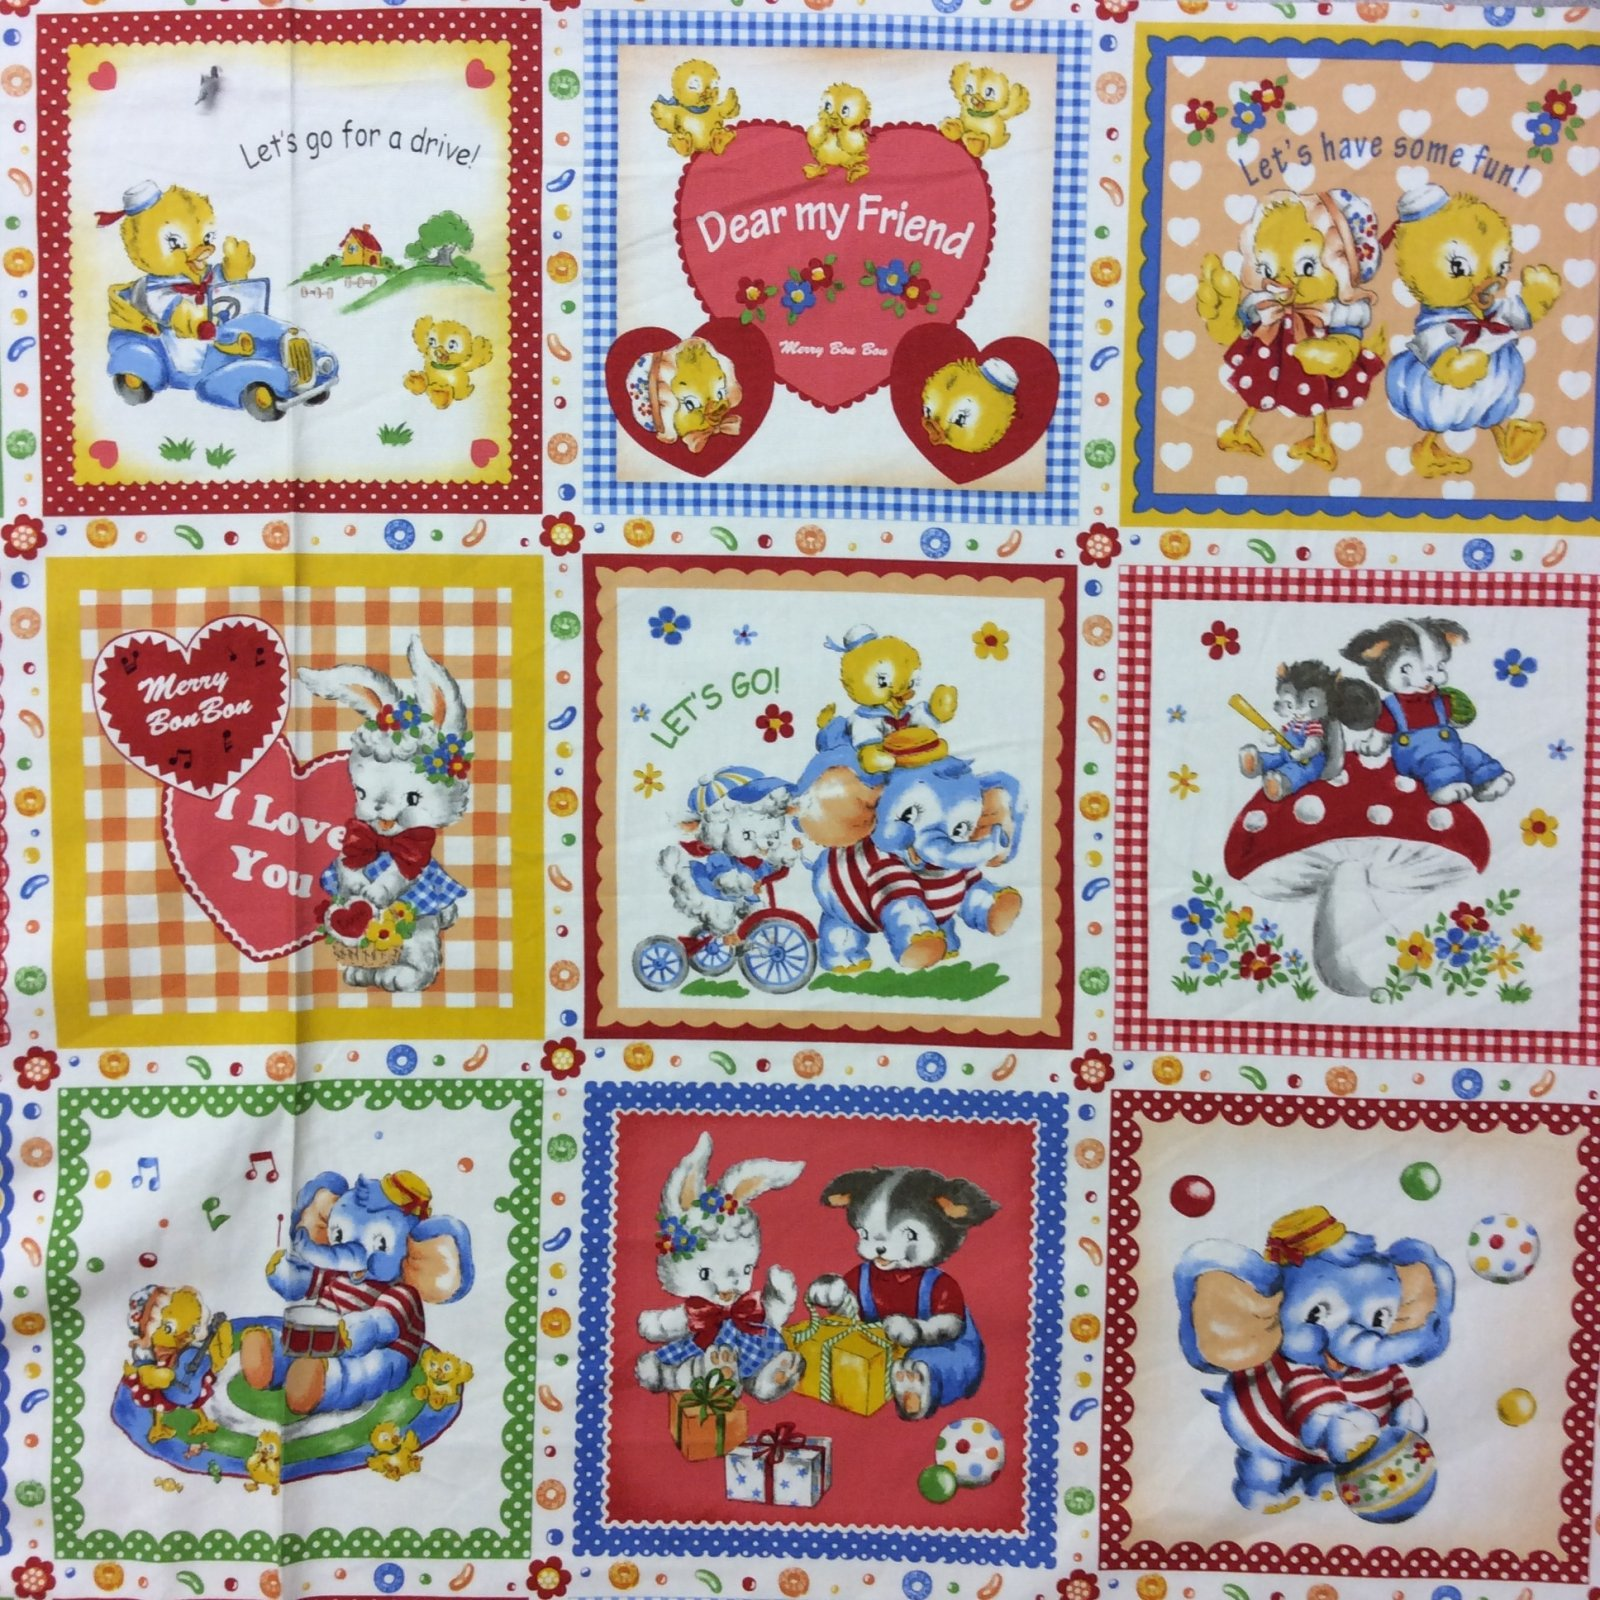 NT01 PNL82 Cute Animals Playing Games Children Kids Canvas Weight Cotton Fabric Panel